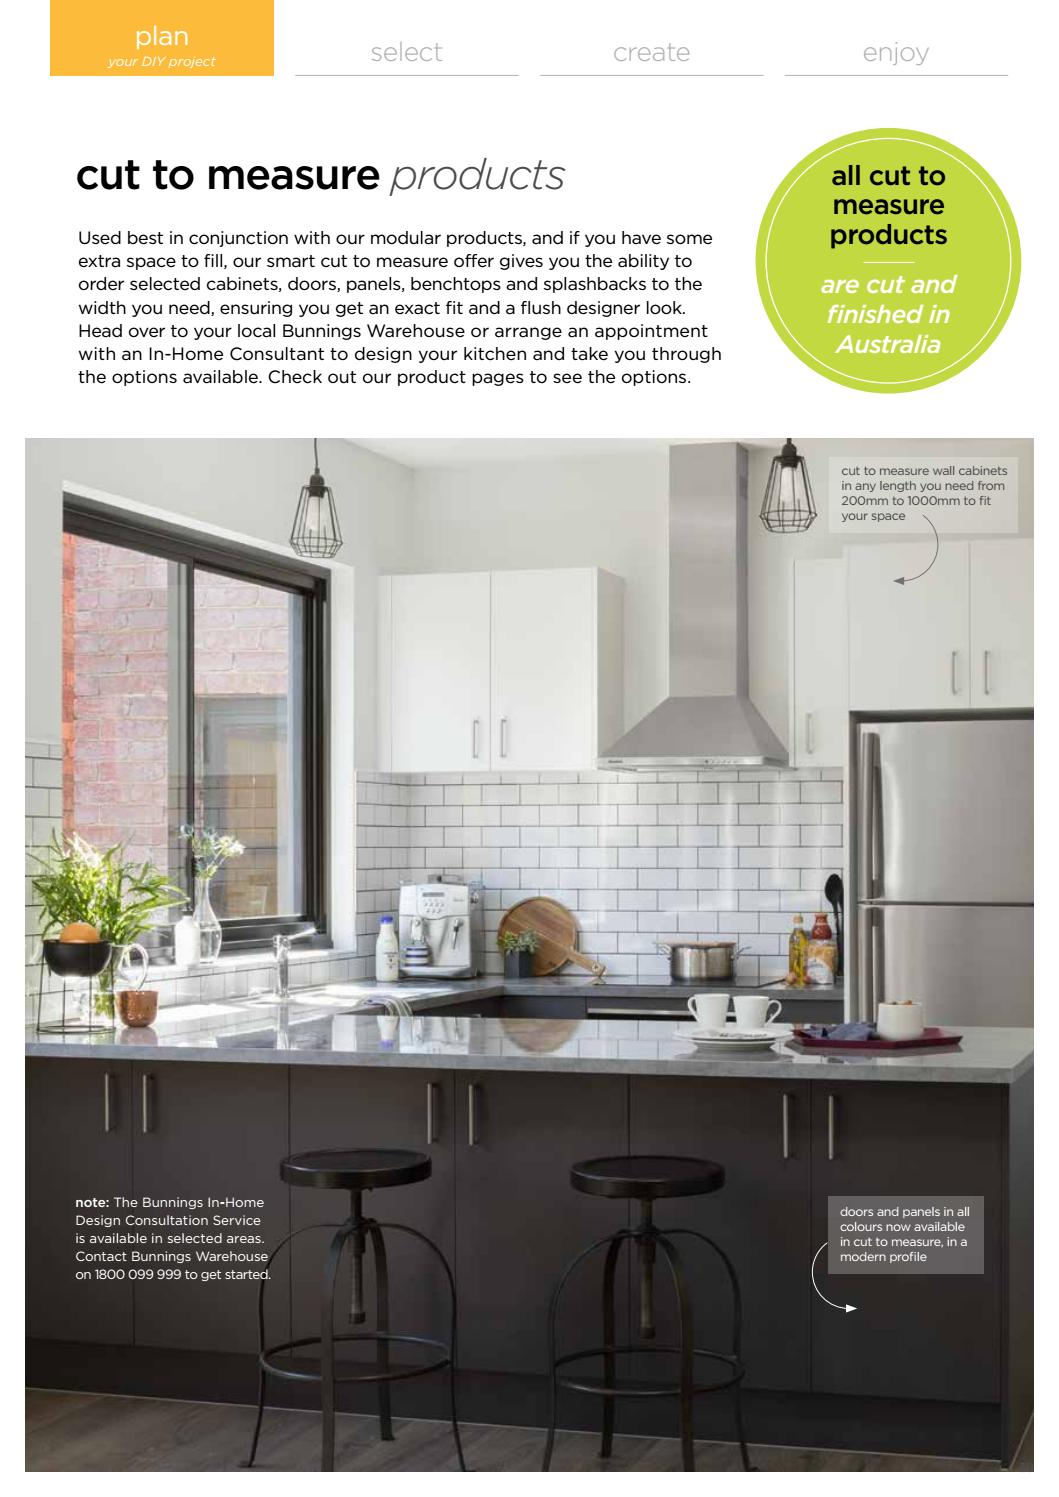 kaboodle kitchen Australian catalogue by DIY Resolutions - issuu